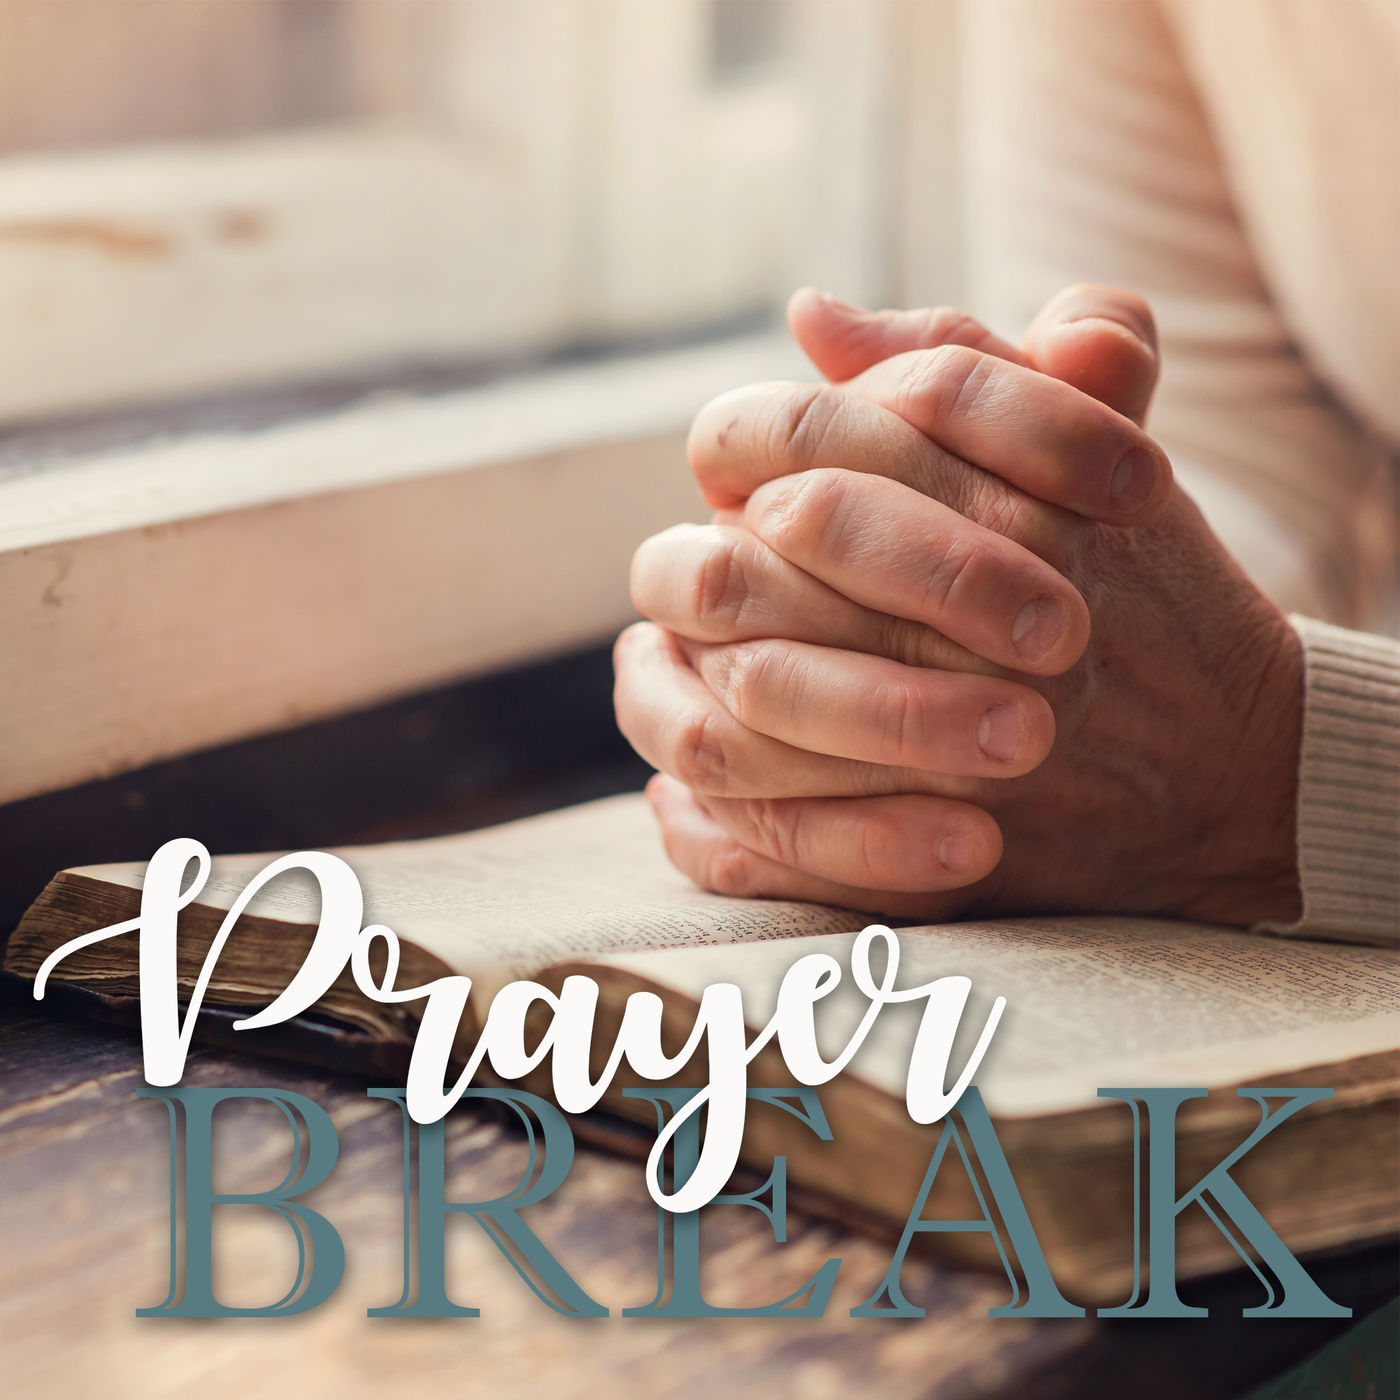 Prayer Break (Special Episode): Protection from Hurricane Florence 2018